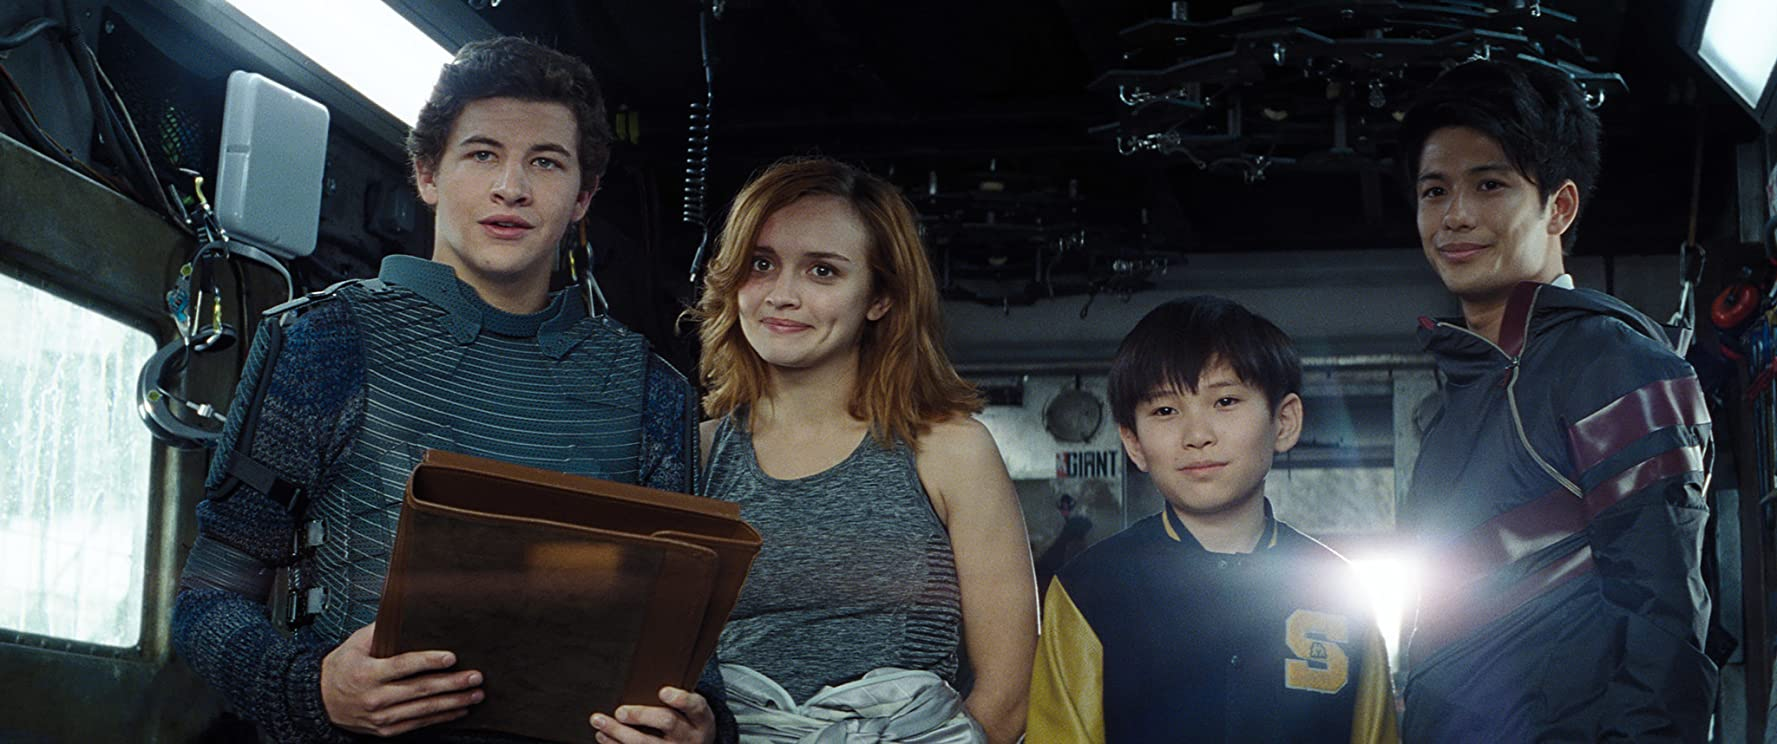 Win Morisaki, Tye Sheridan, Olivia Cooke, and Philip Zhao in Ready Player One (2018)